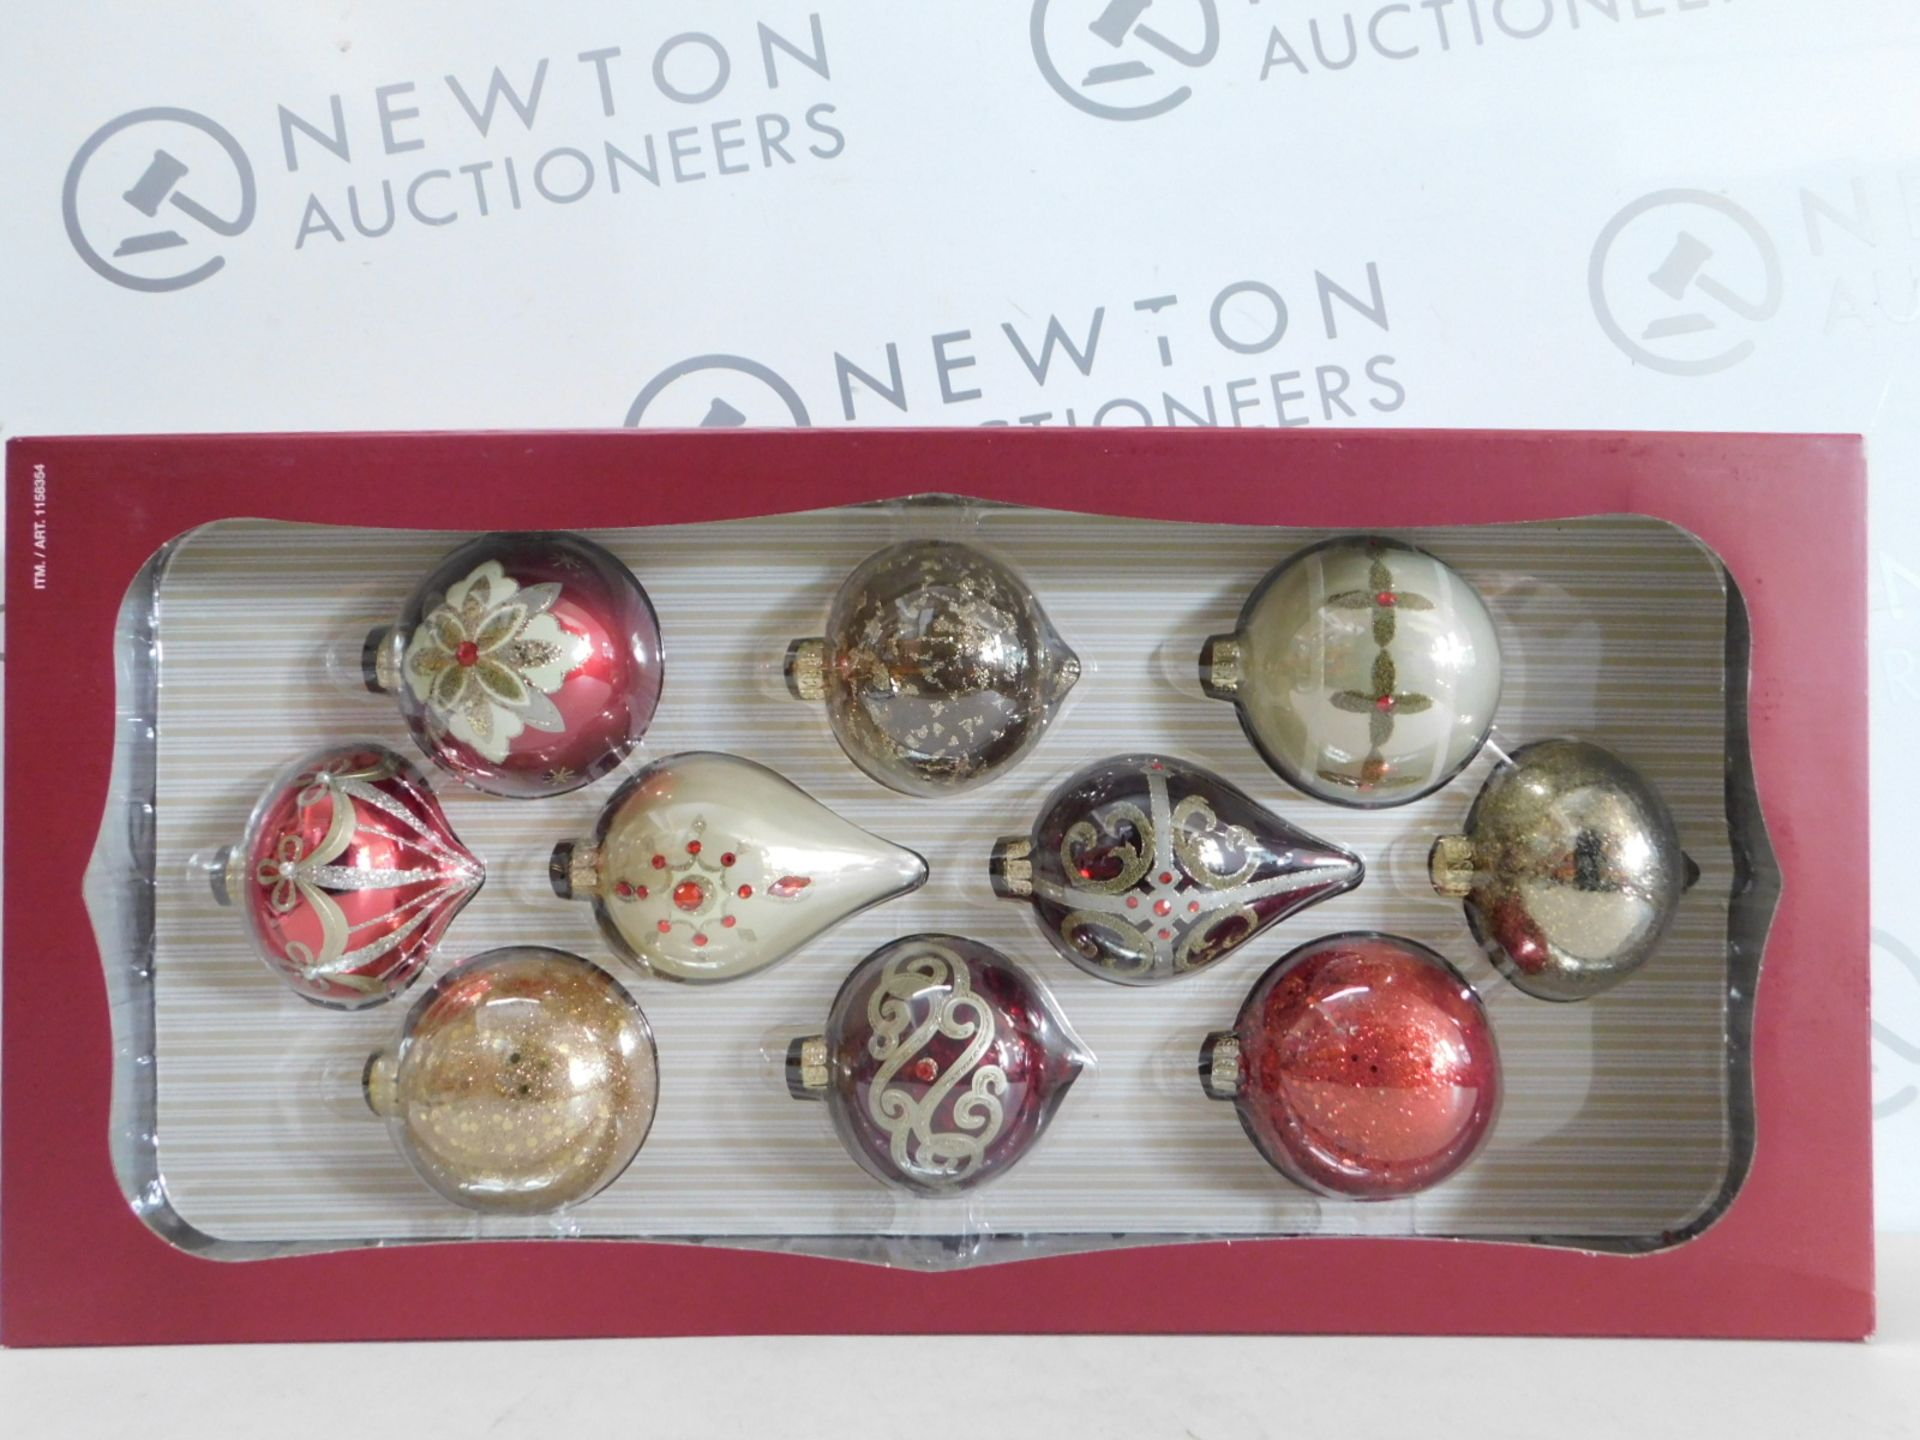 Lot 285 - 1 BRAND NEW BOXED KIRKLAND SIGNATURE 10 HAND-DECORATED GLASS ORNAMENTS RRP £29.99